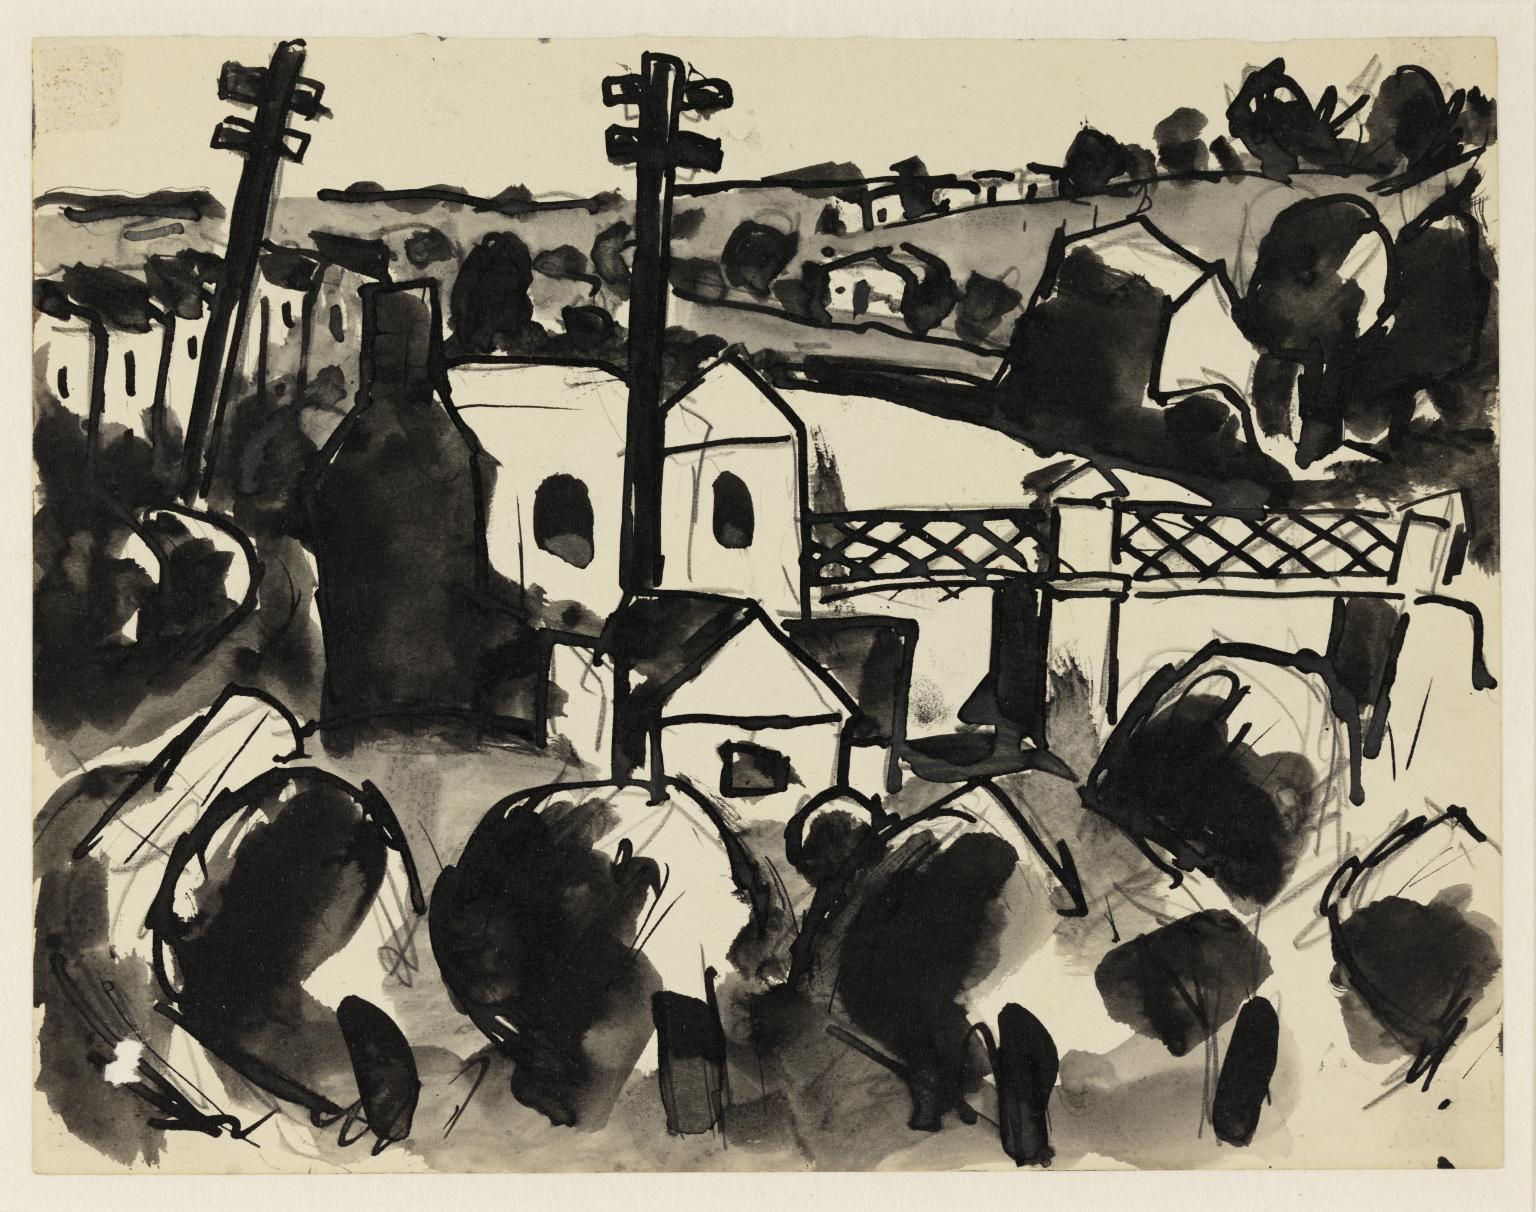 Sketch of looming down on the bridge by Josef Herman; © The estate of Josef Herman, © Tate (year), CC-BY-NC-ND 3.0 (Unported), http://www.tate.org.uk/art/archive/TGA-835-115-1